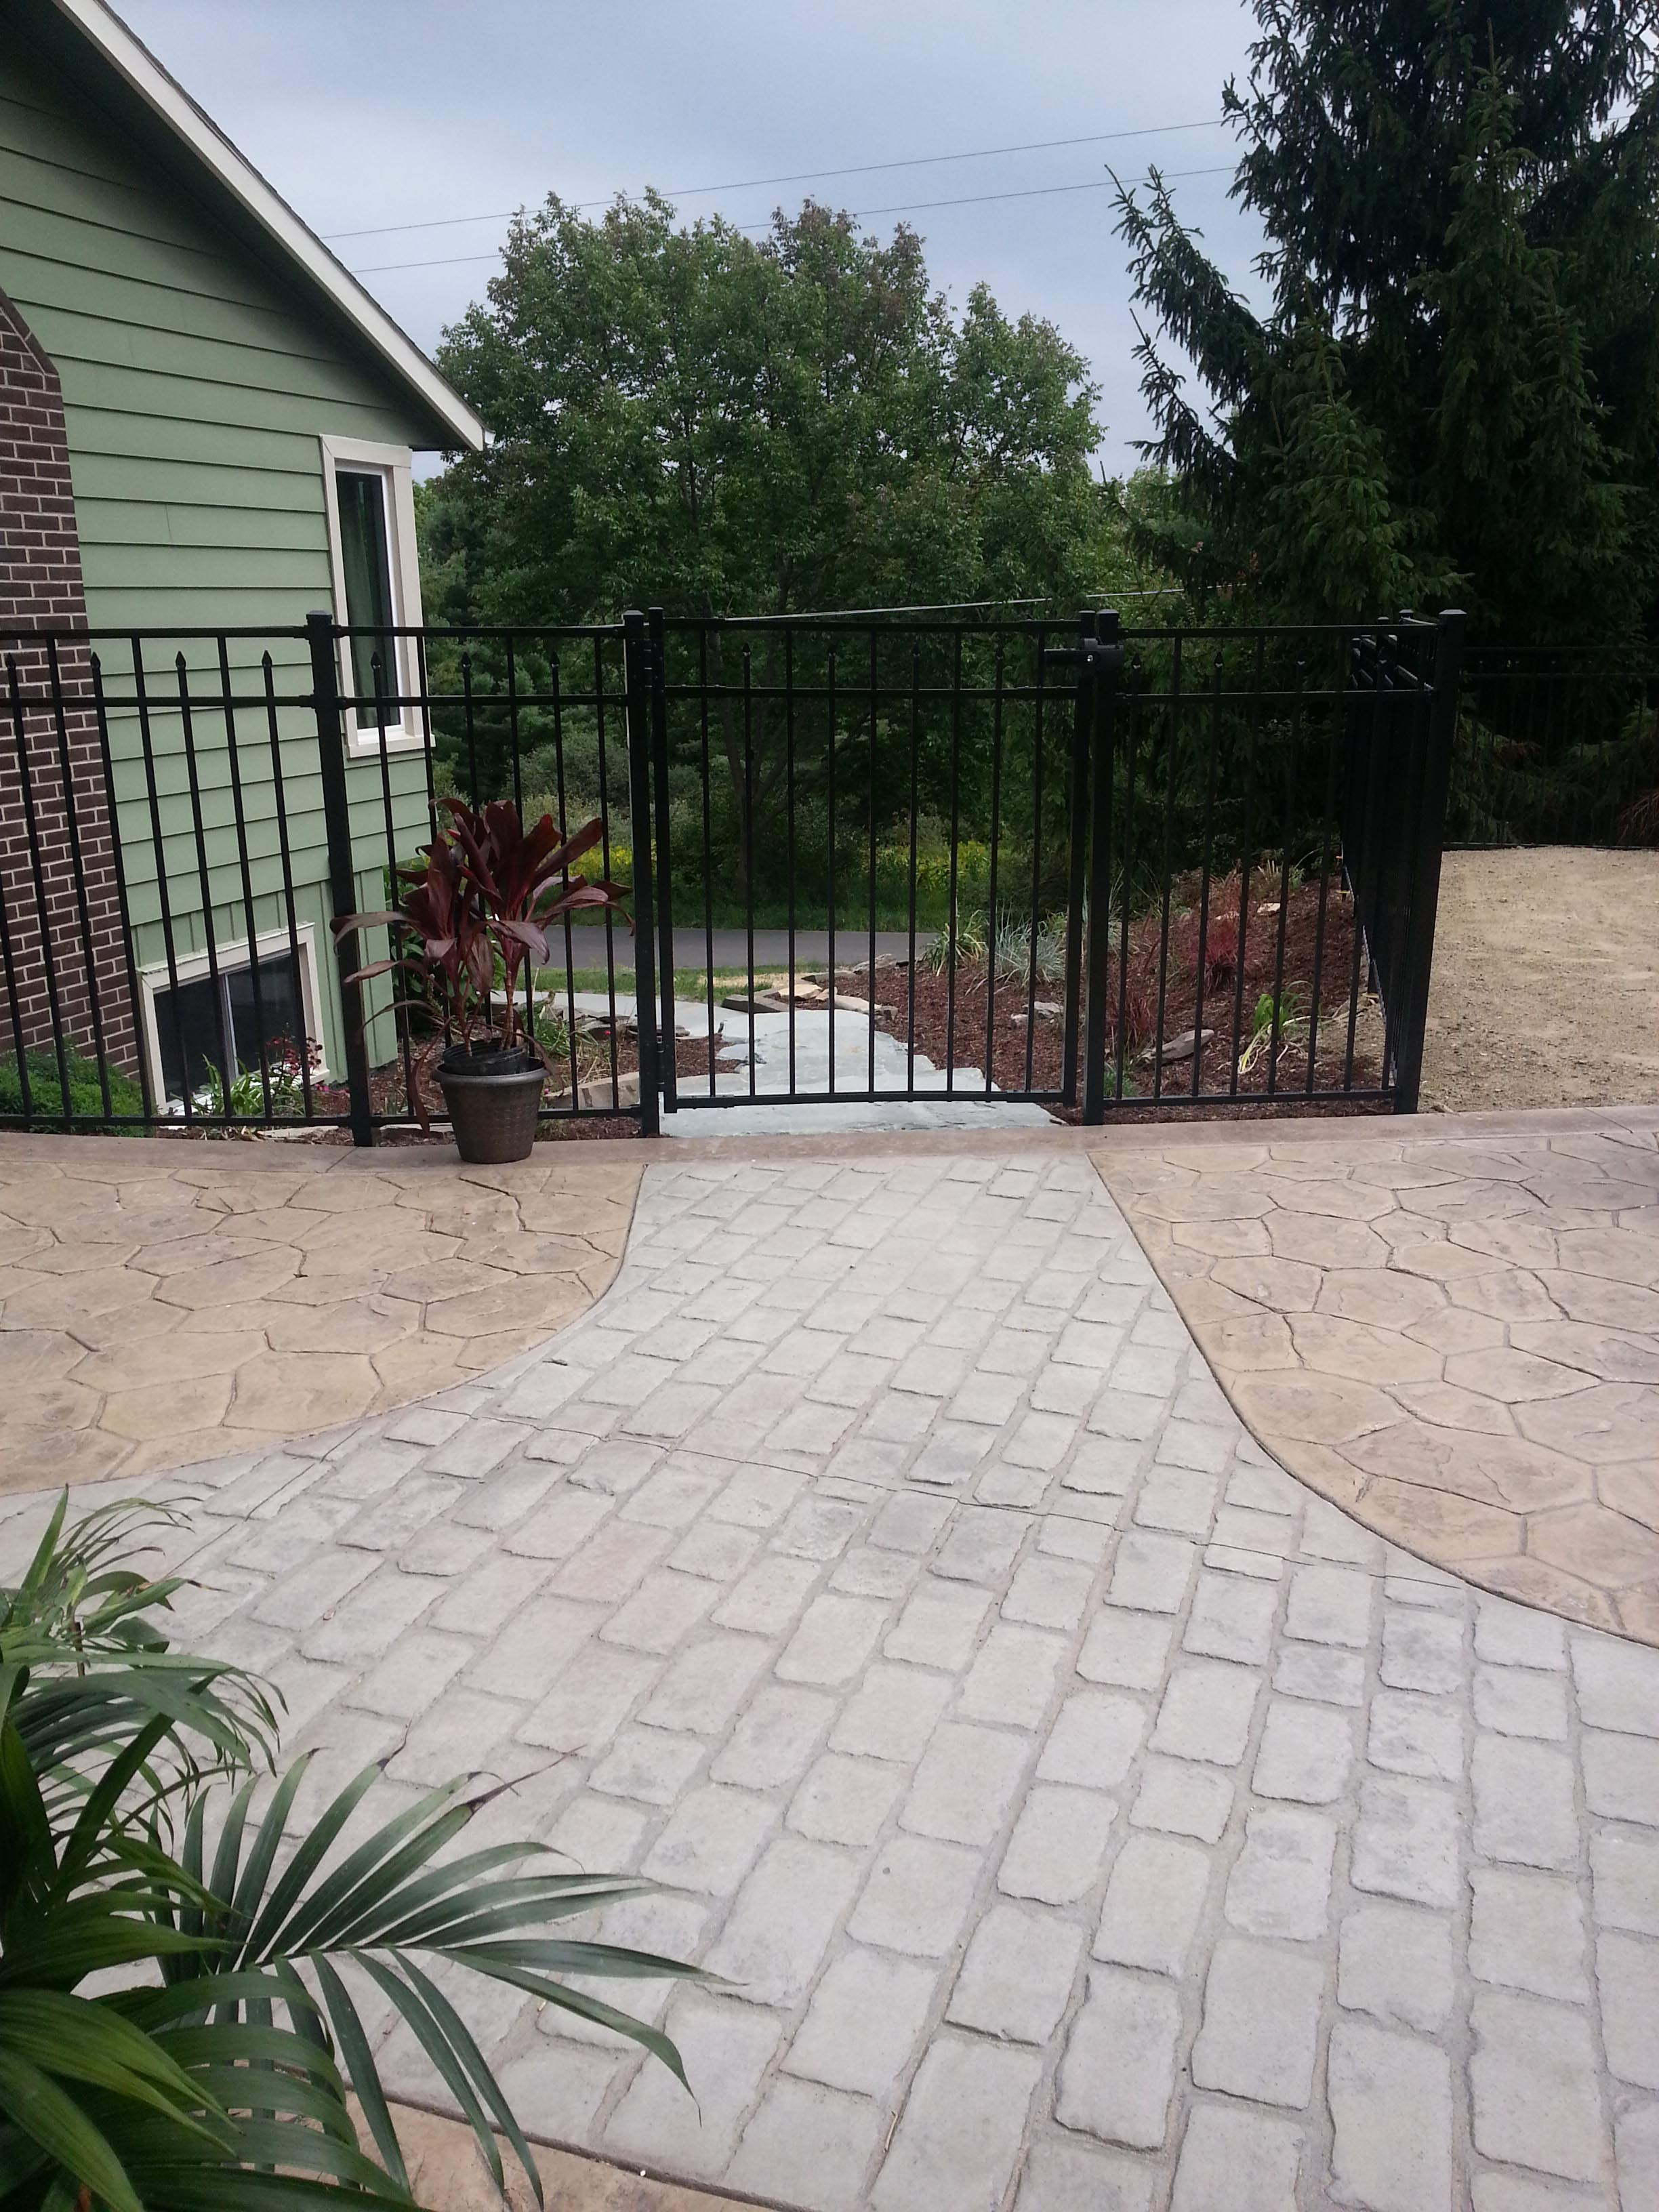 Another gorgeous entrance to the yard with an aluminum gate